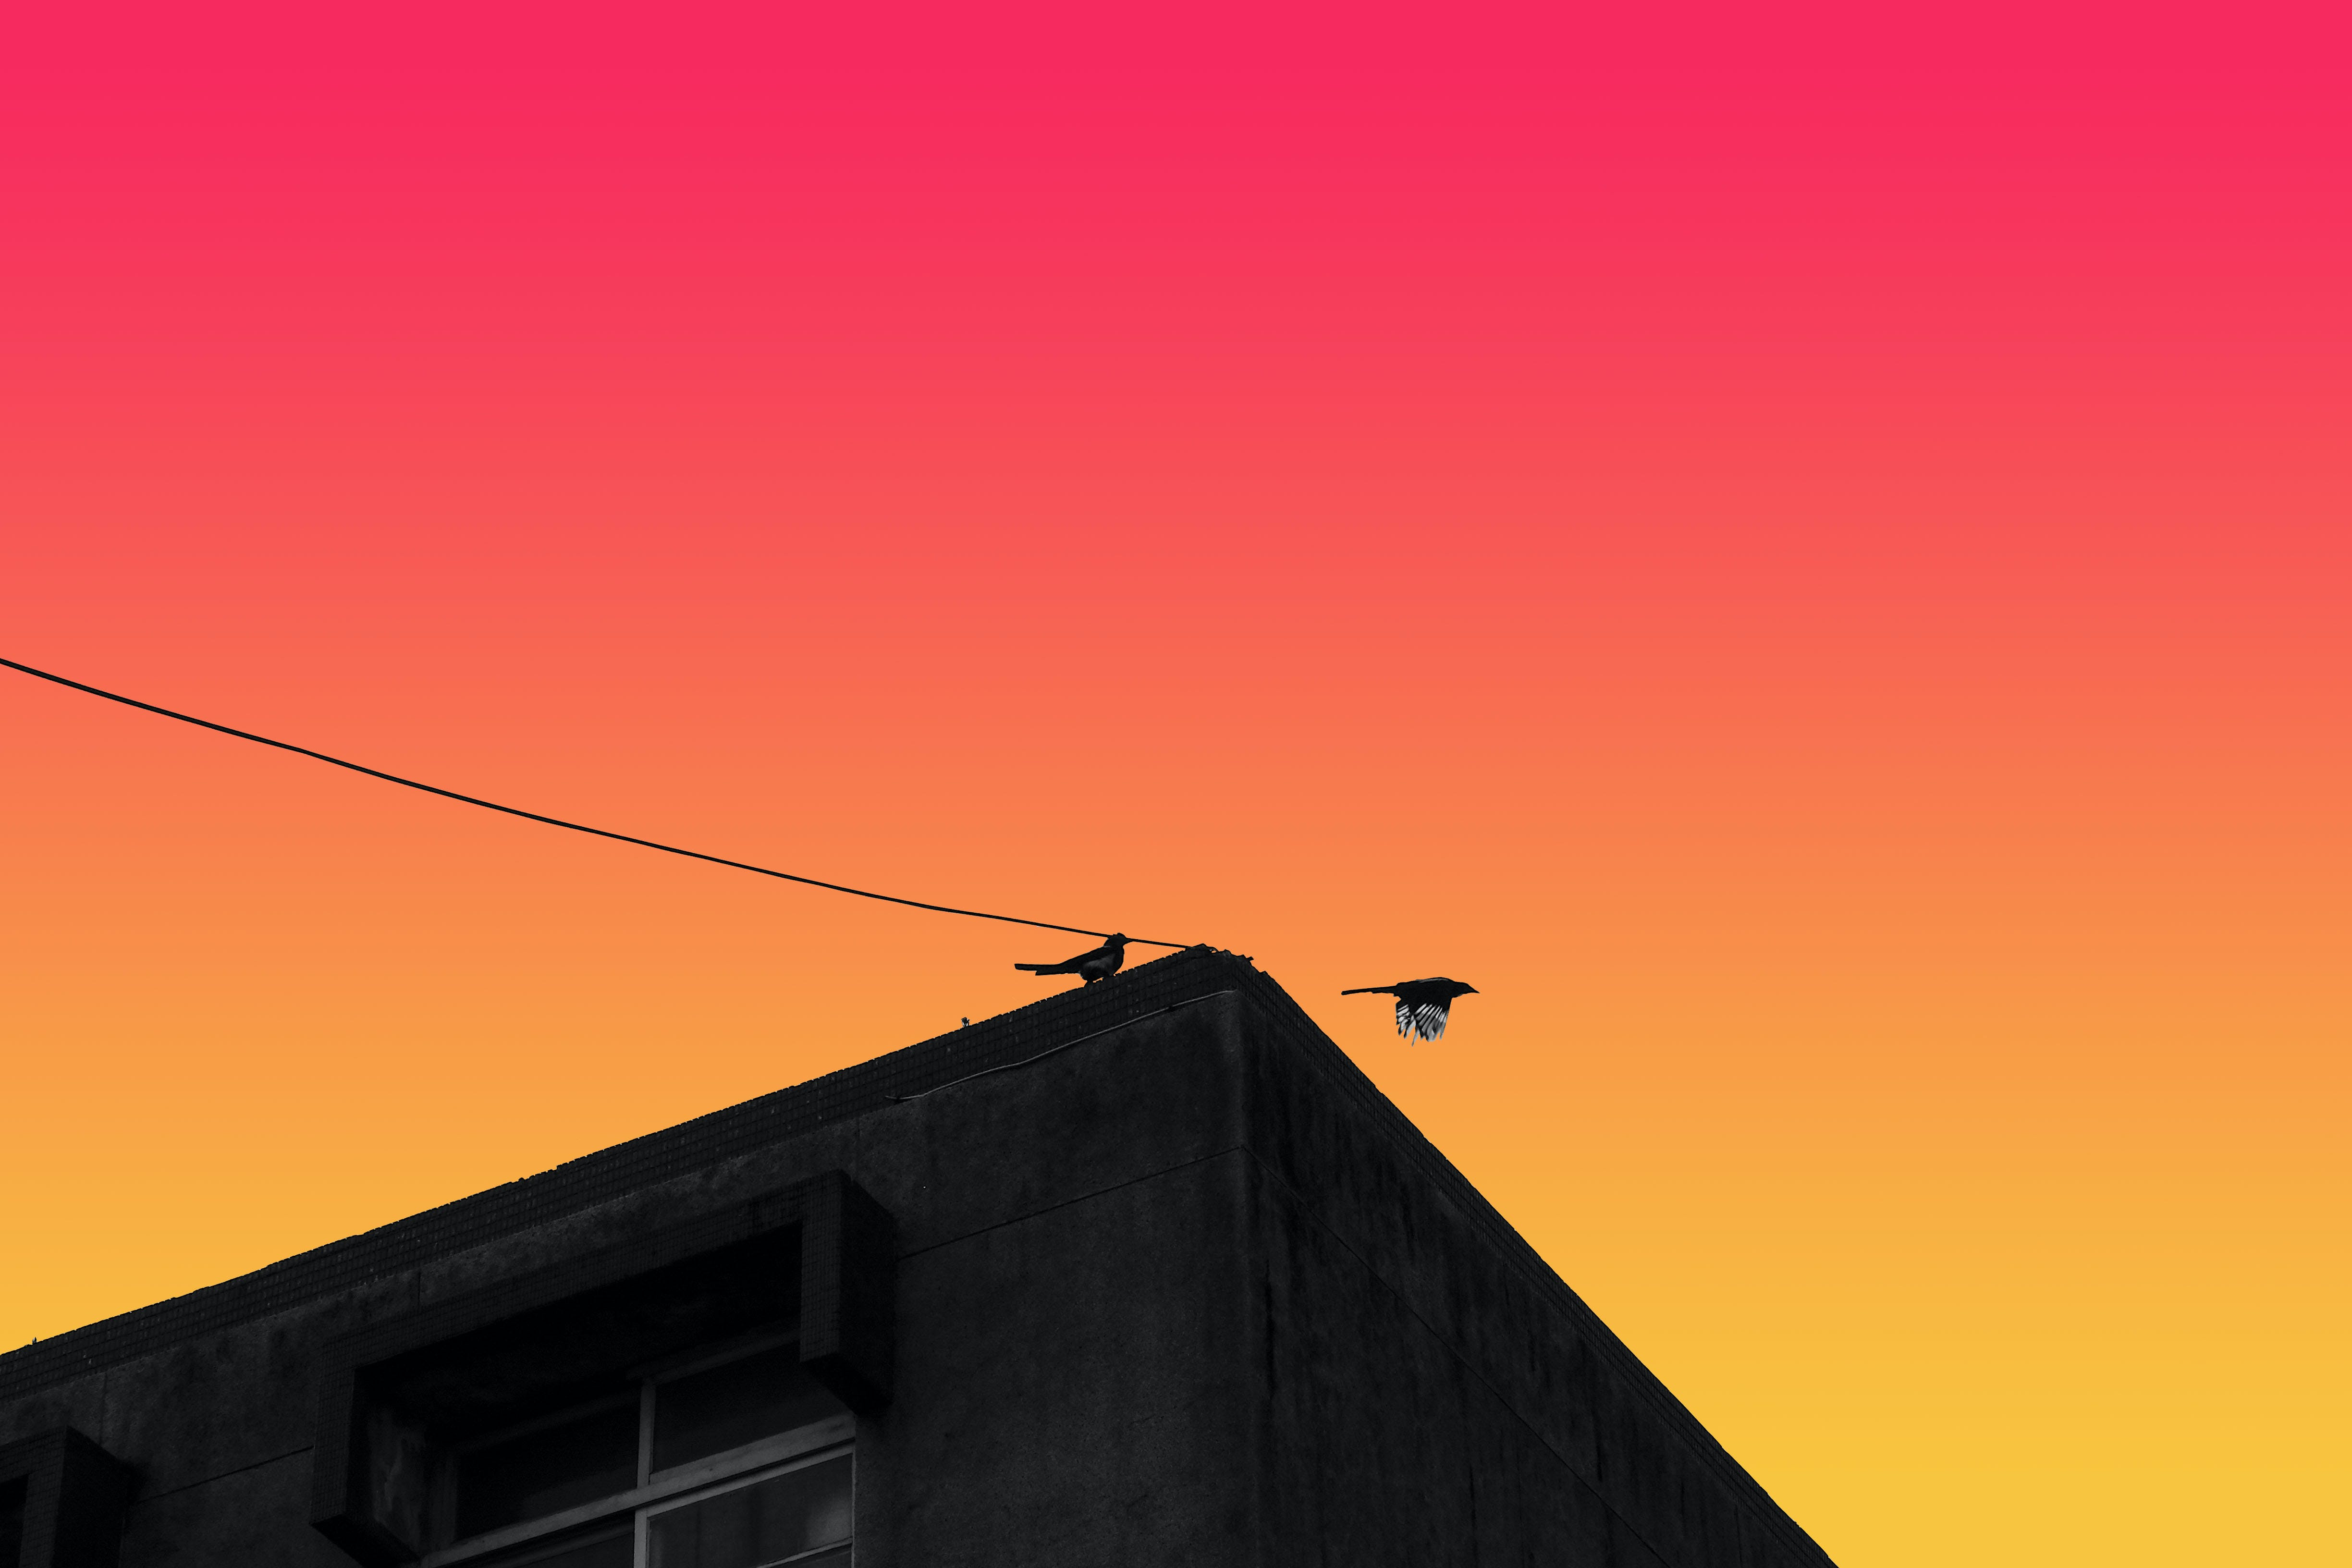 Low Angle and Silhouette Photography of Two Birds on Roof